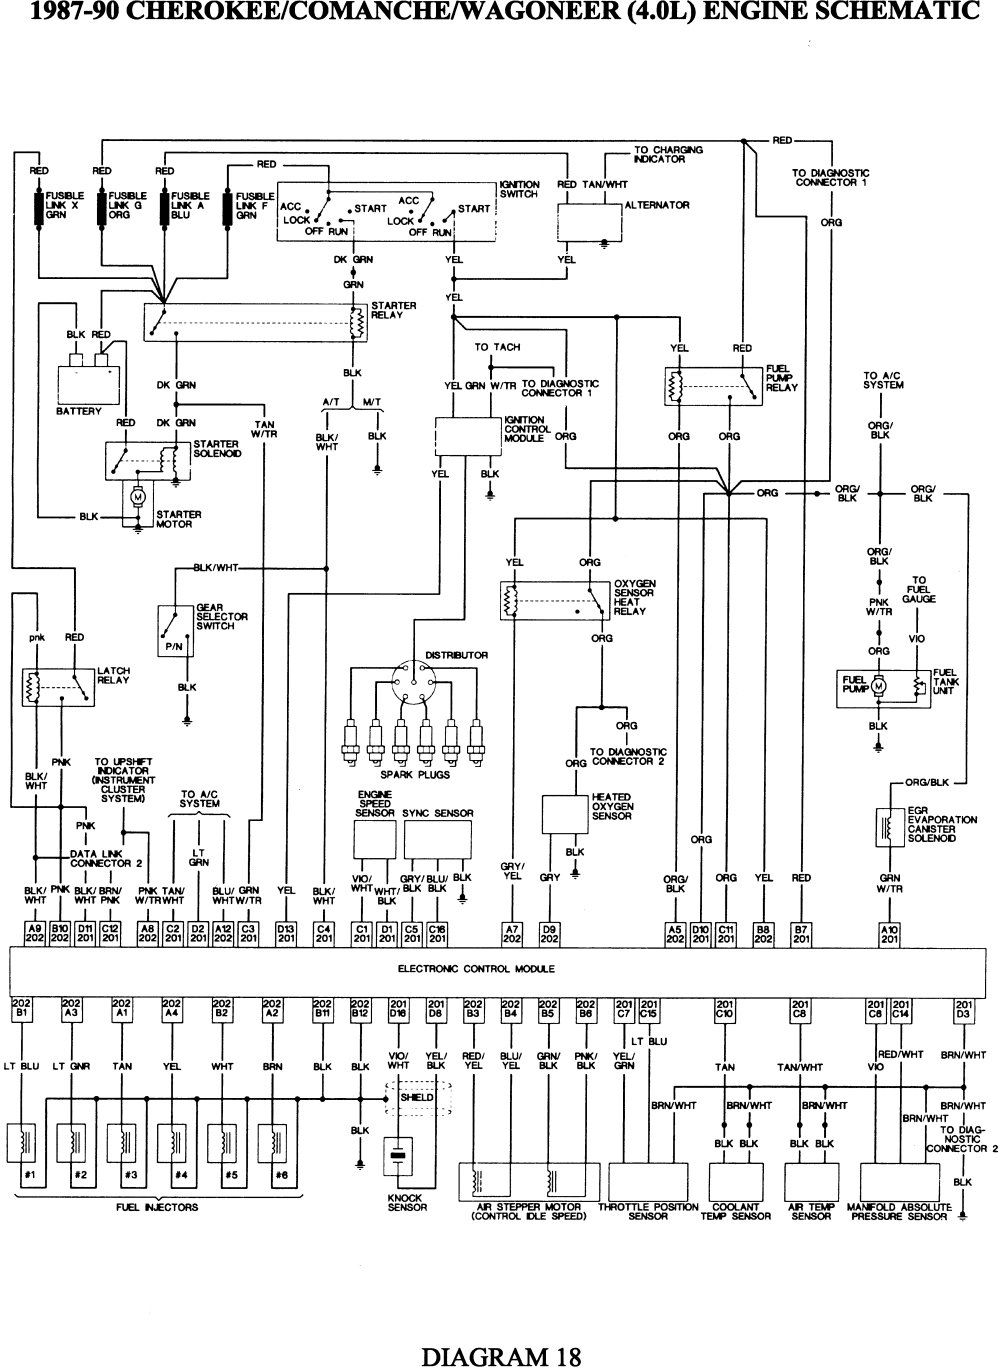 jeep transmission wiring diagram in 97 wrangler wiring diagramjeep transmission wiring diagram in 97 wrangler wiring [ 1000 x 1369 Pixel ]